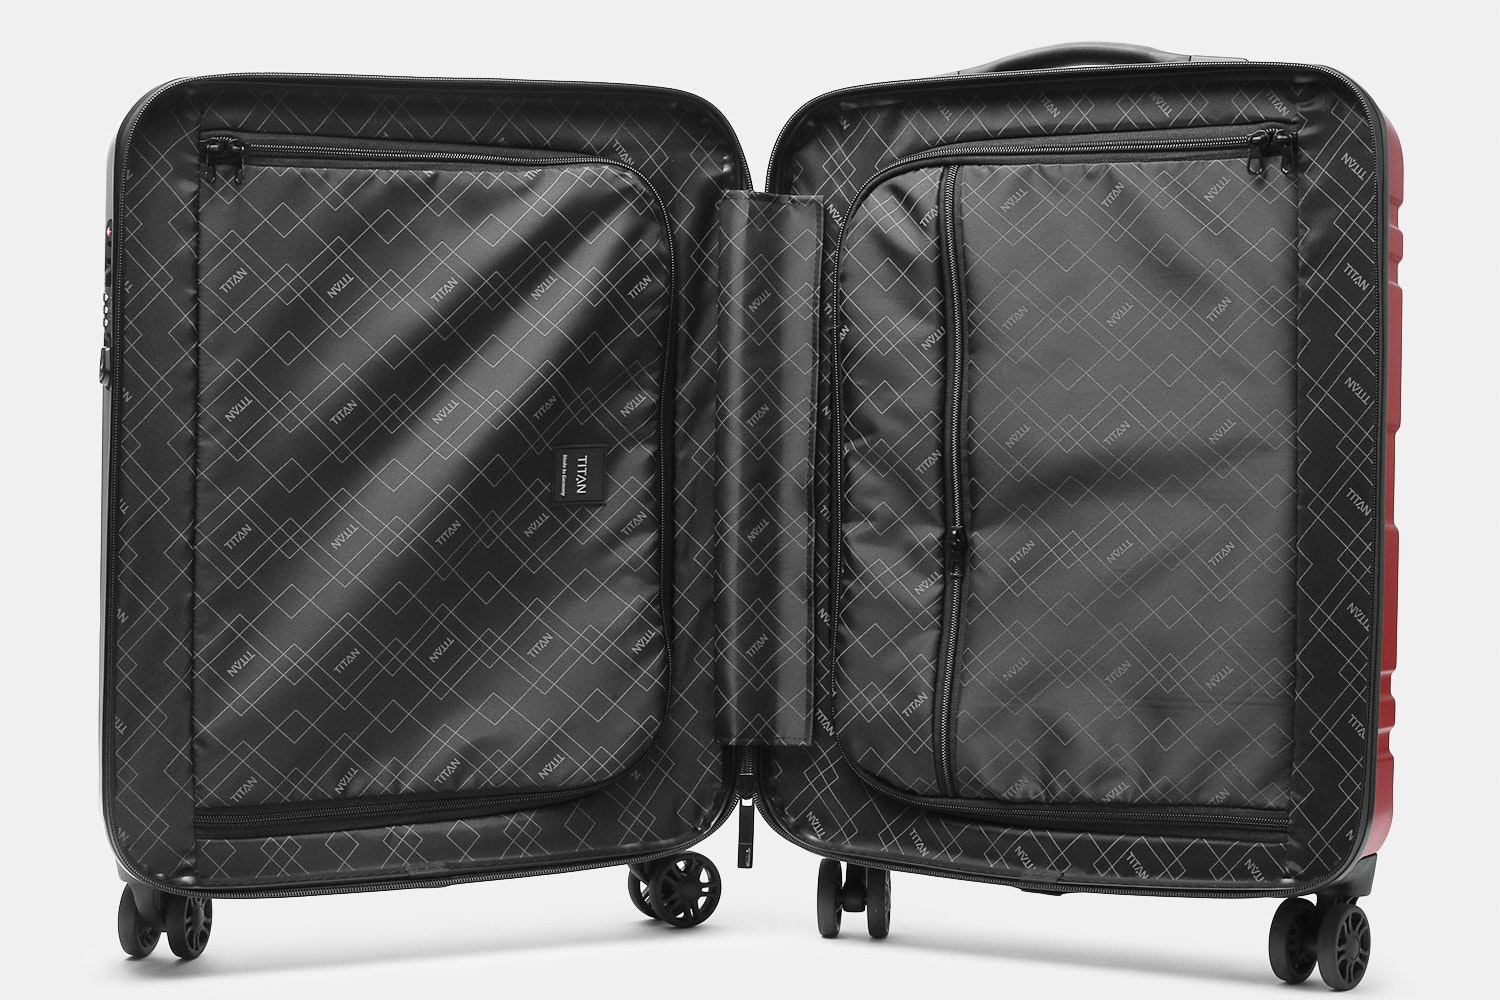 Titan Prior Hardside Luggage